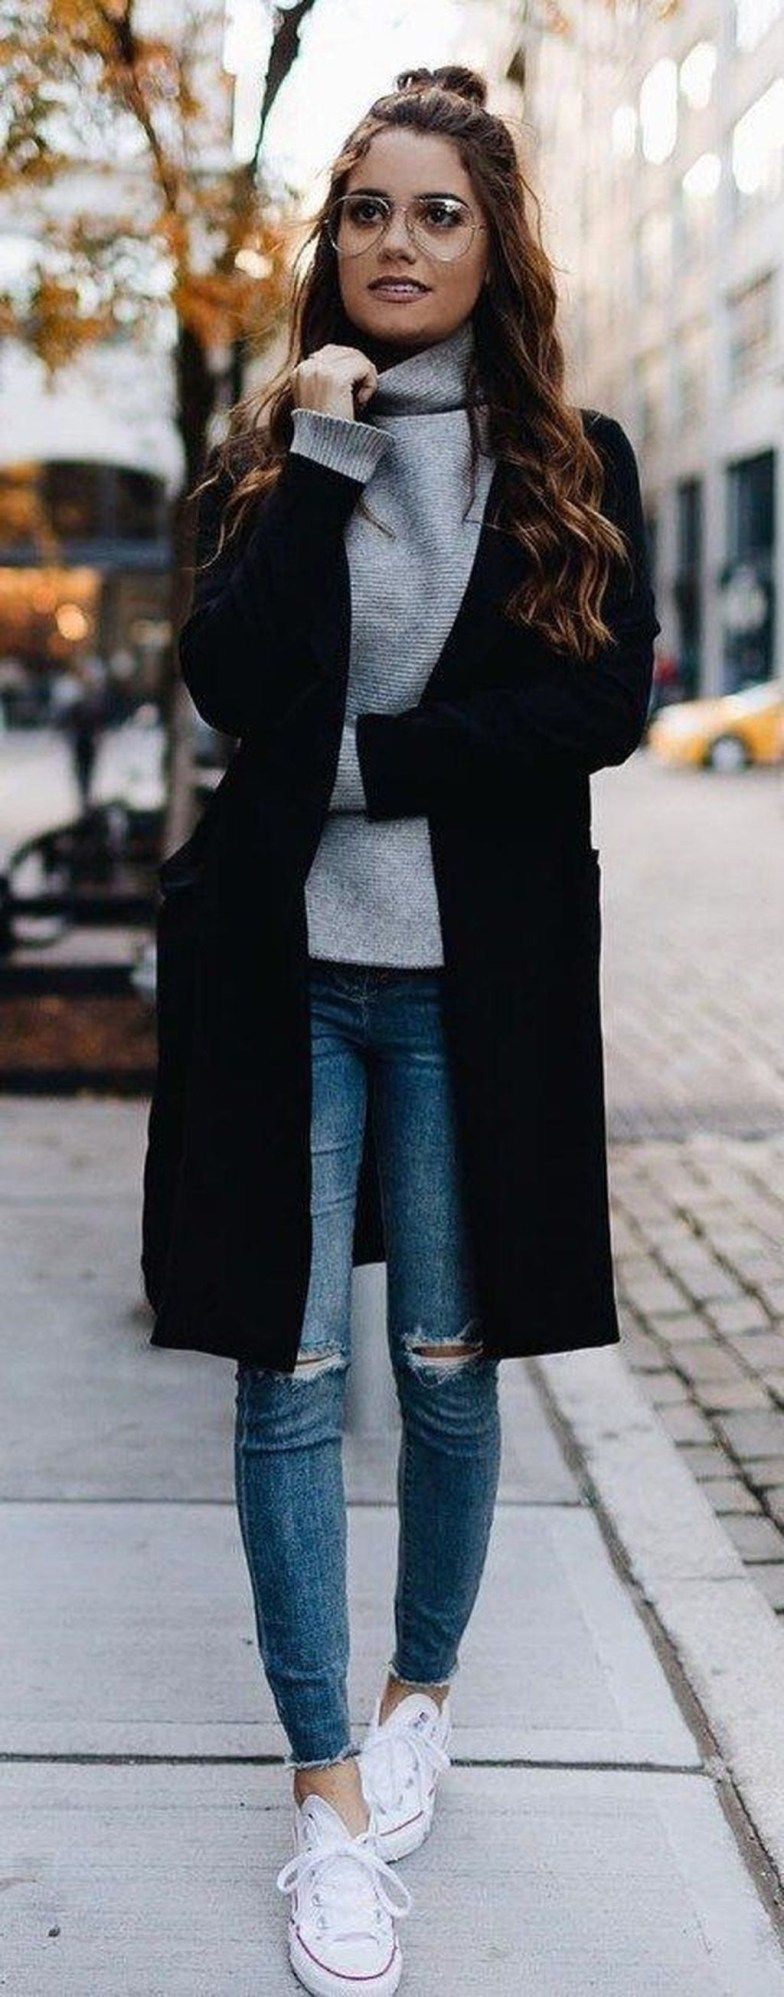 Best casual winter outfit ideas 2018 for women 26 | Casual ...